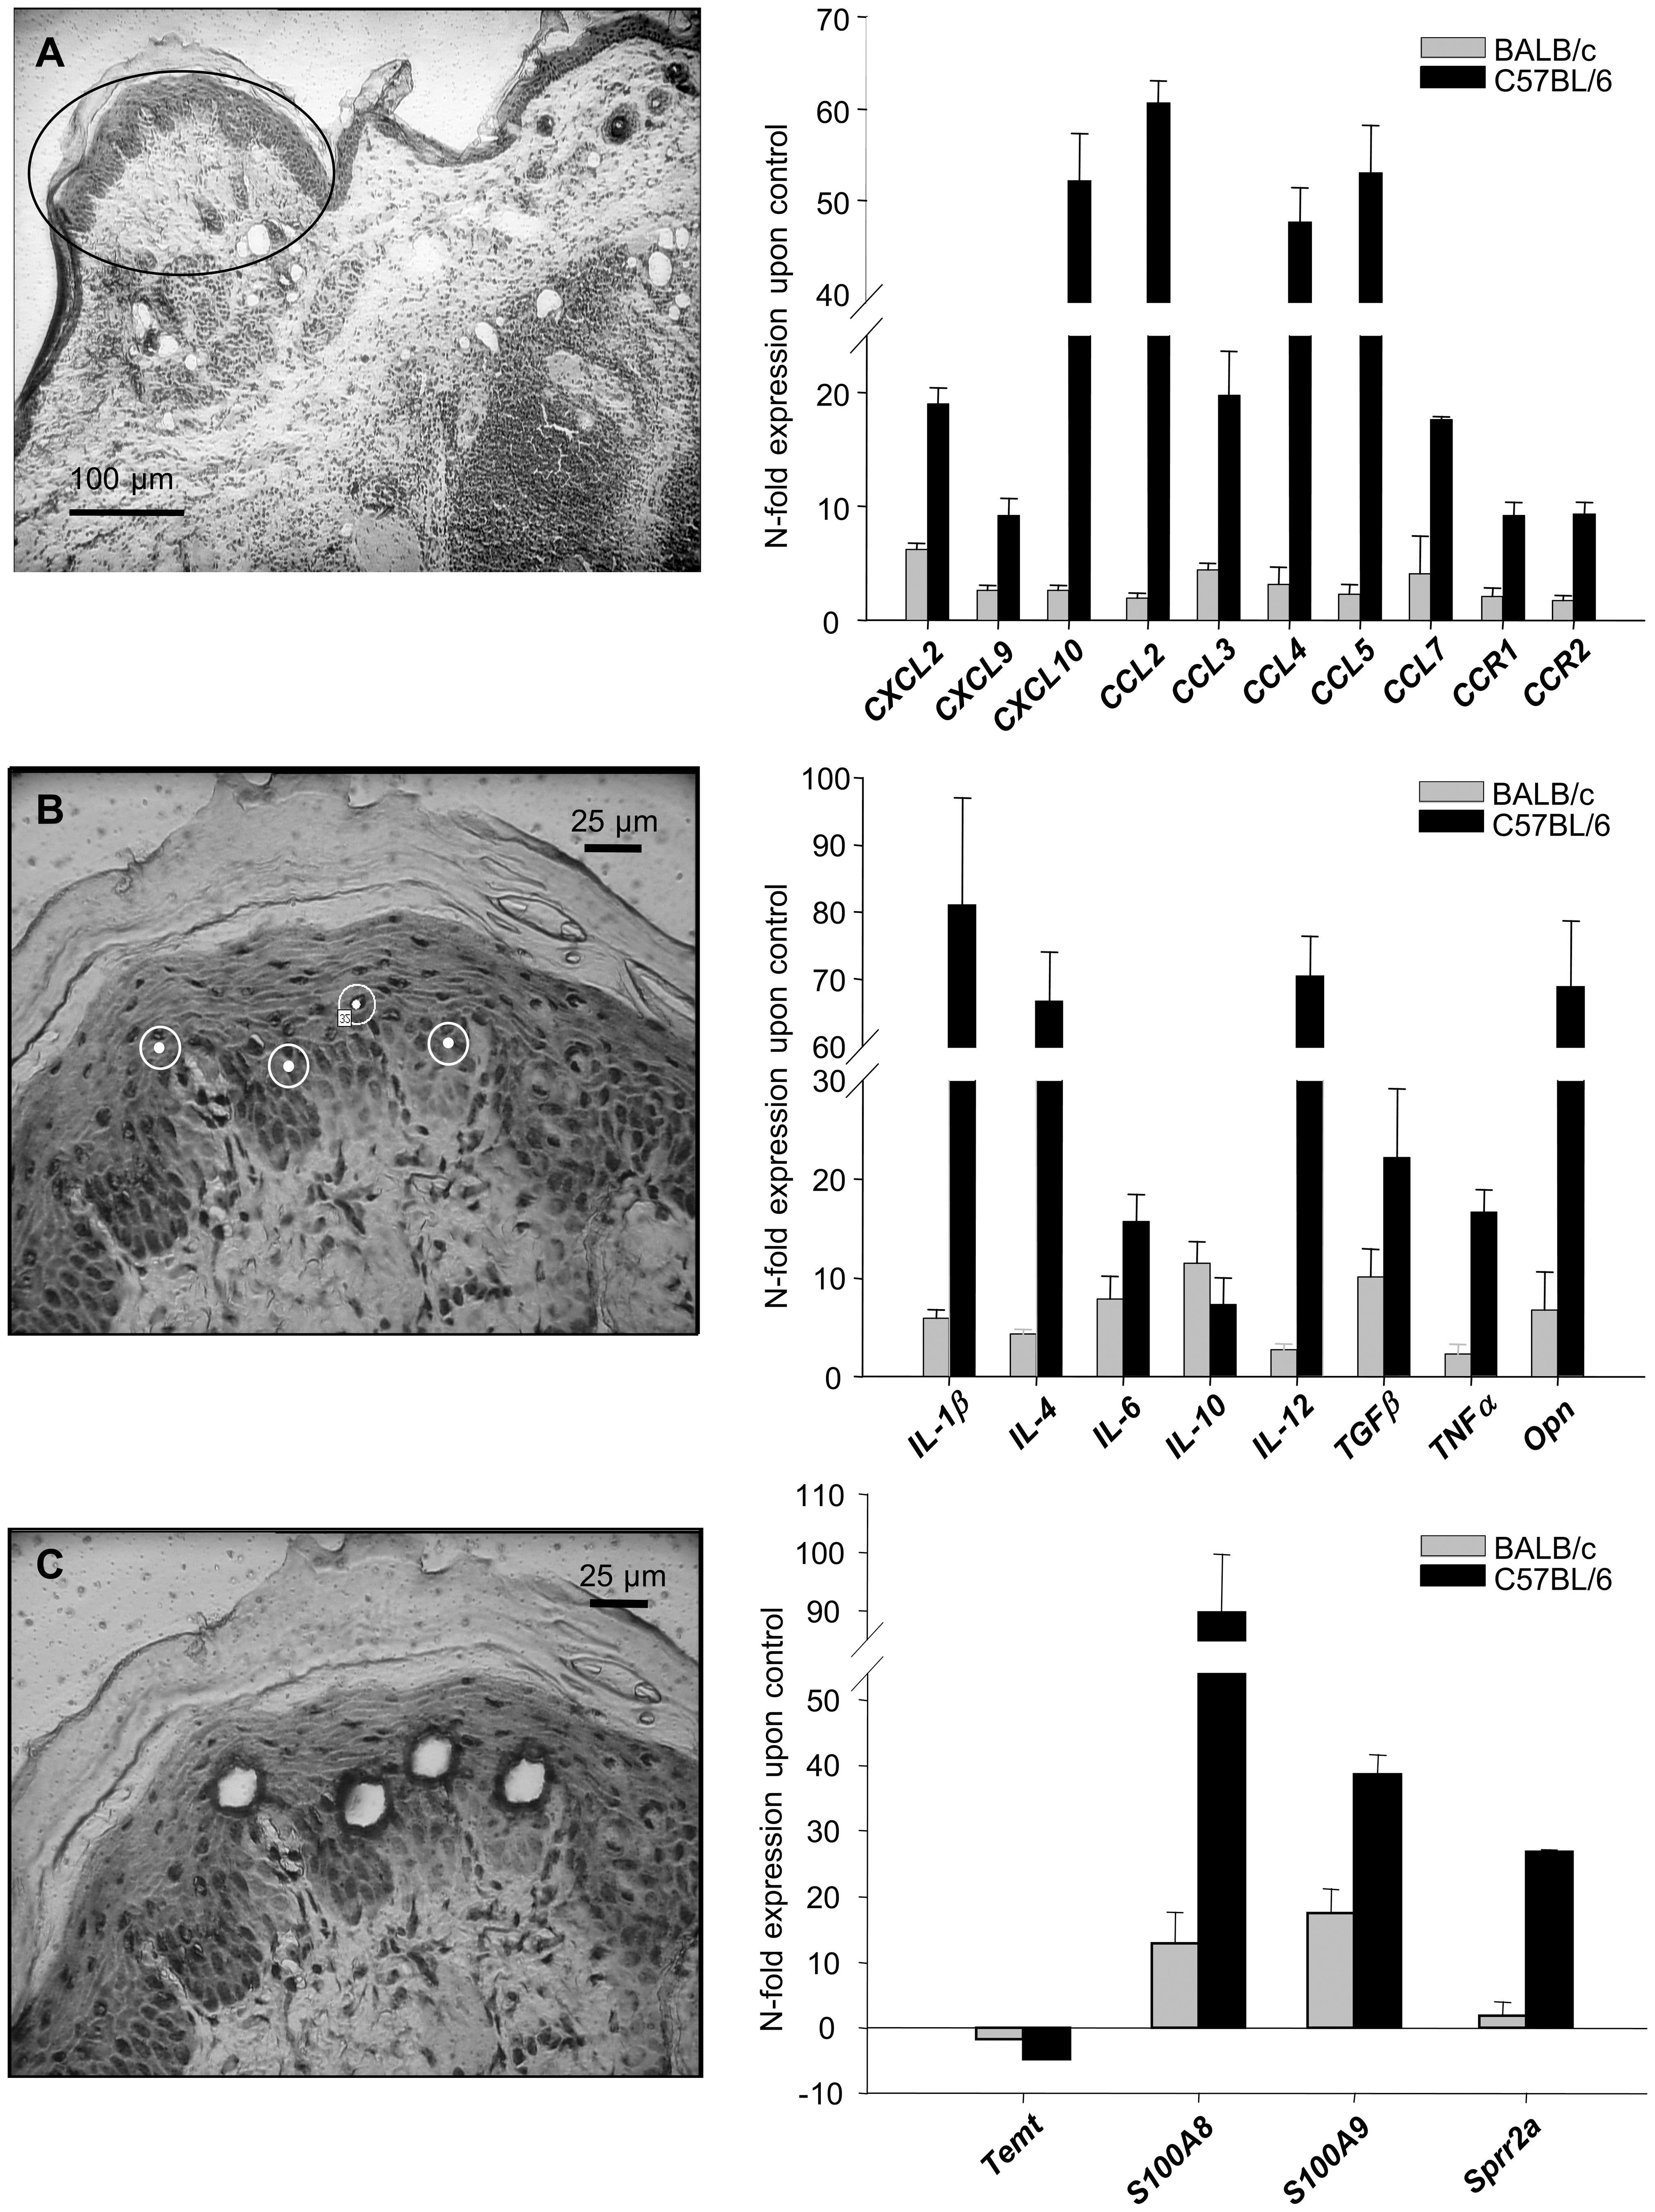 Analysis of gene in keratinocytes isolated from <i>L. major</i> infected skin.